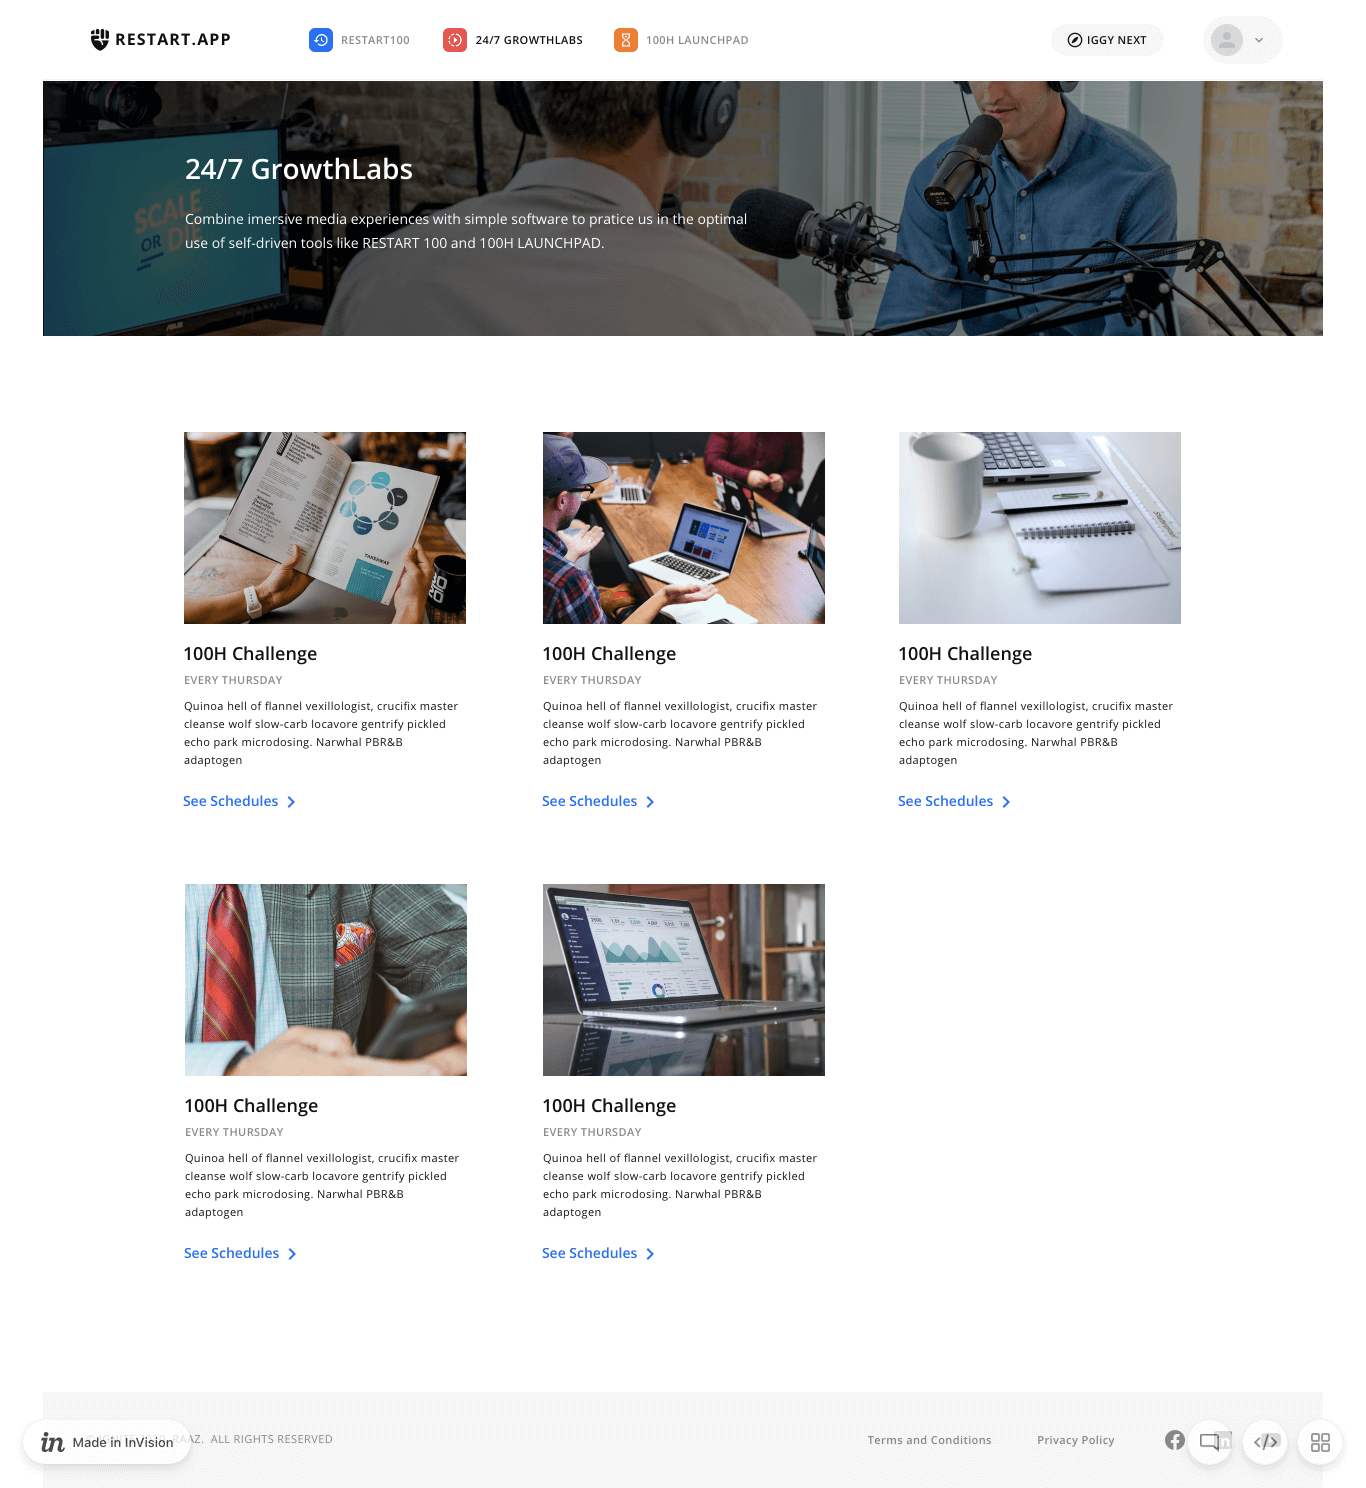 screencapture-projects-invisionapp-share-3YWZQDK7VJC-2020-05-15-01_18_05 (1)